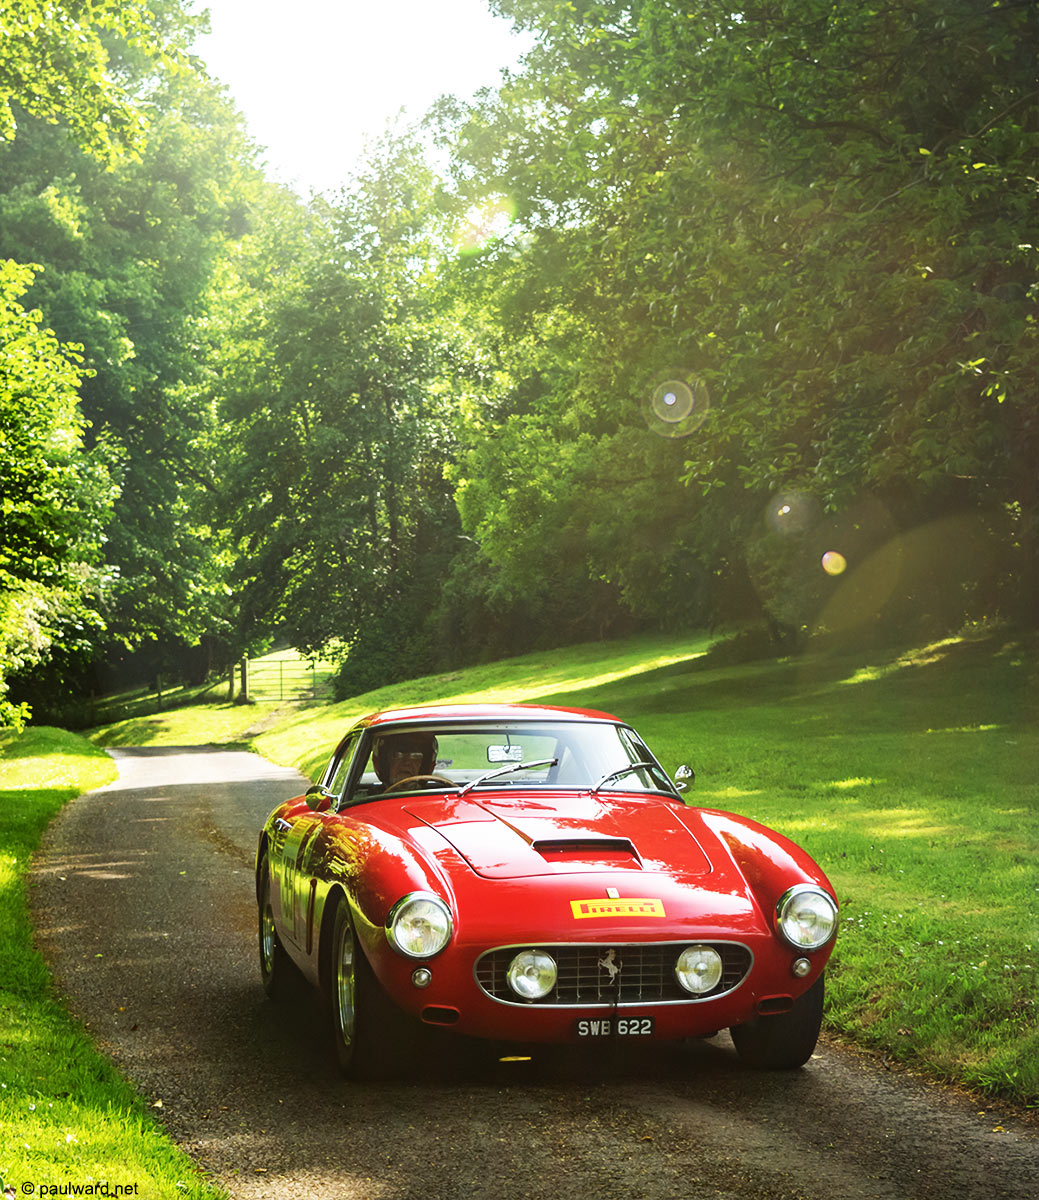 Ferrari 250 SWB at Prescott hill climb photograph by automotive photographer Paul Ward